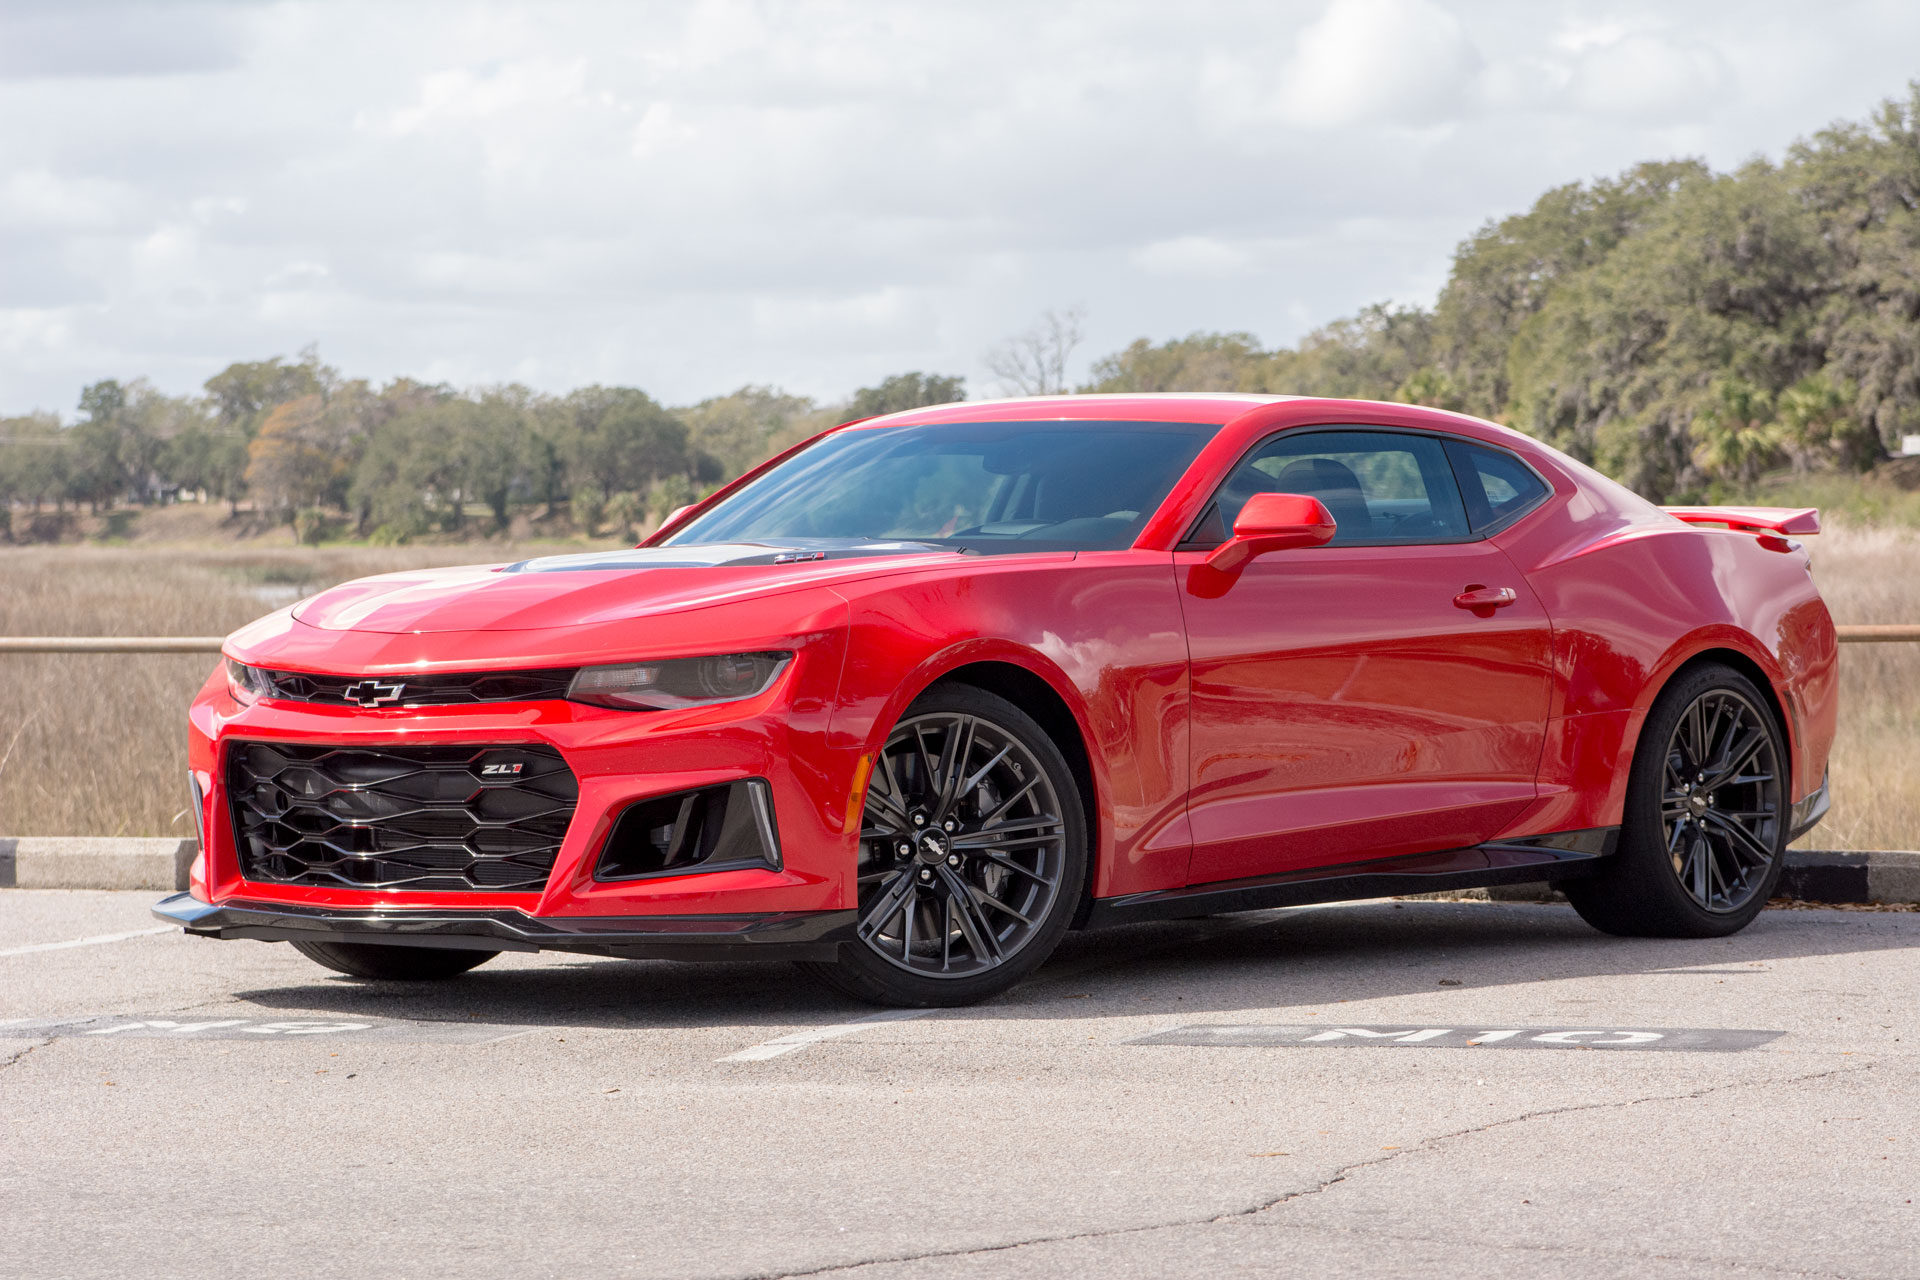 2017 chevrolet camaro zl1 first drive review too fast to - Camaro zl1 ...